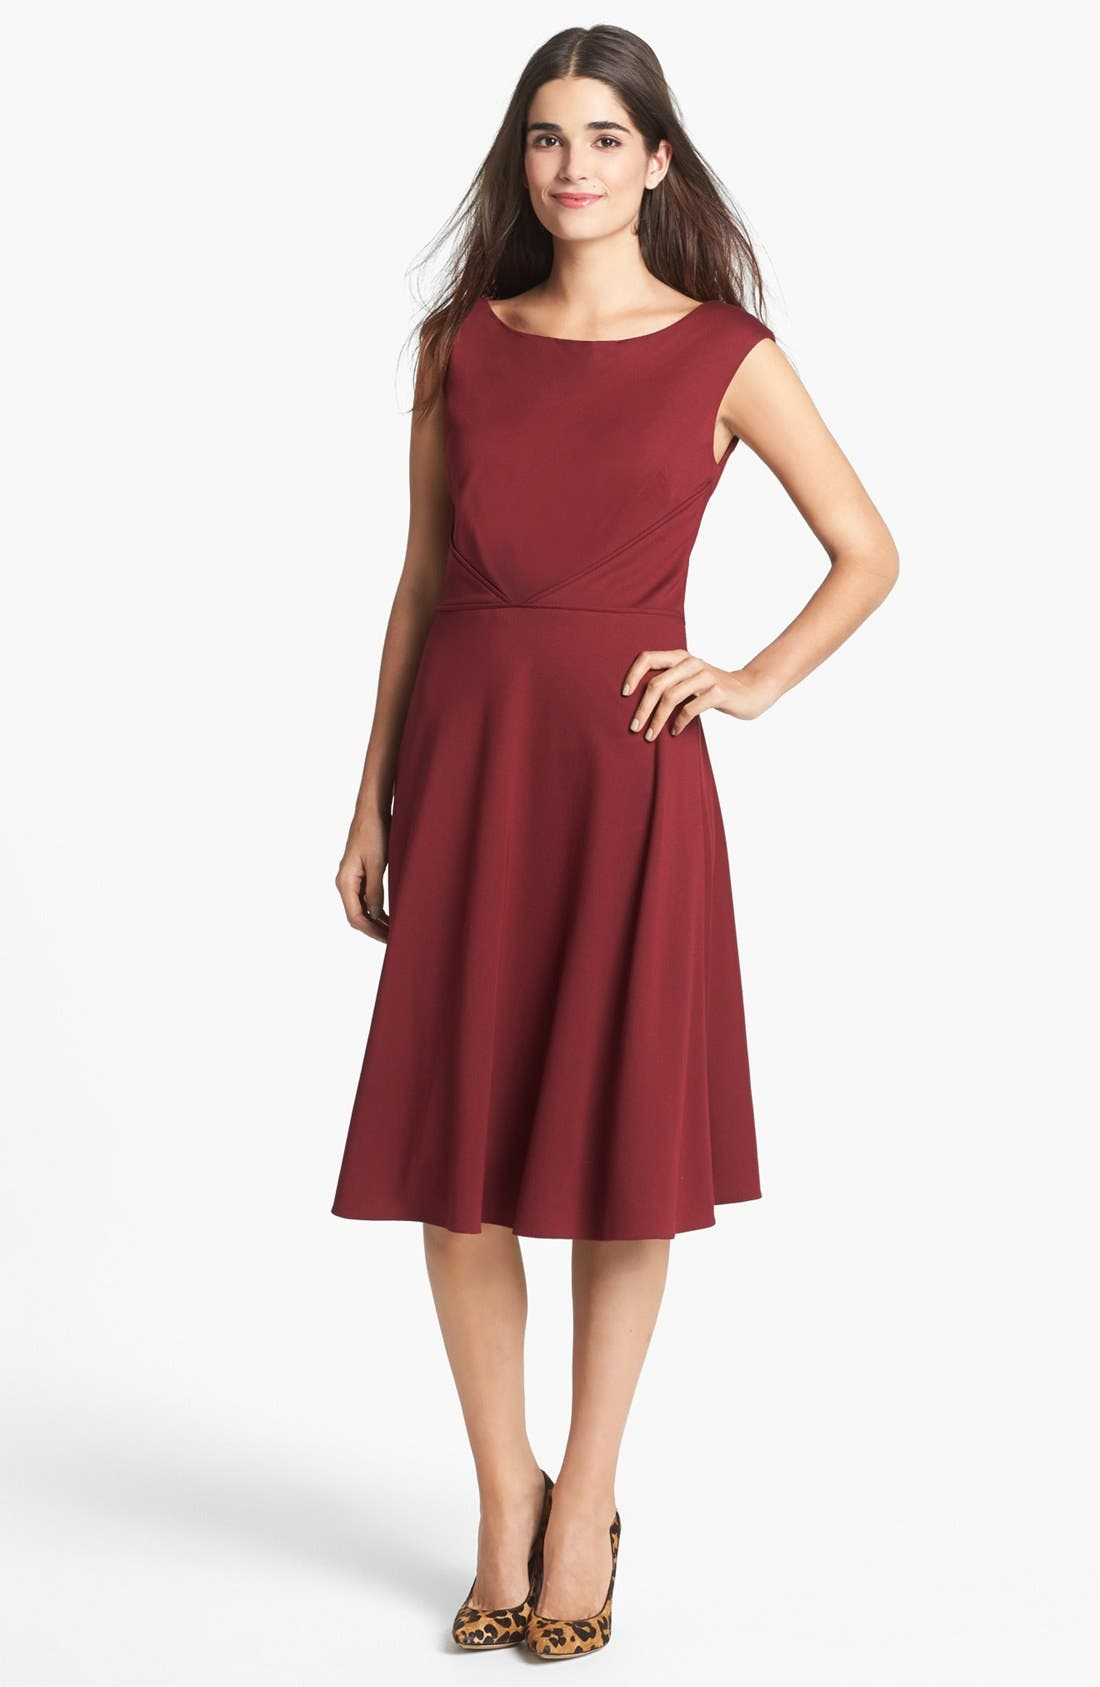 Main Image - Adrianna Papell Ponte Knit Fit & Flare Dress